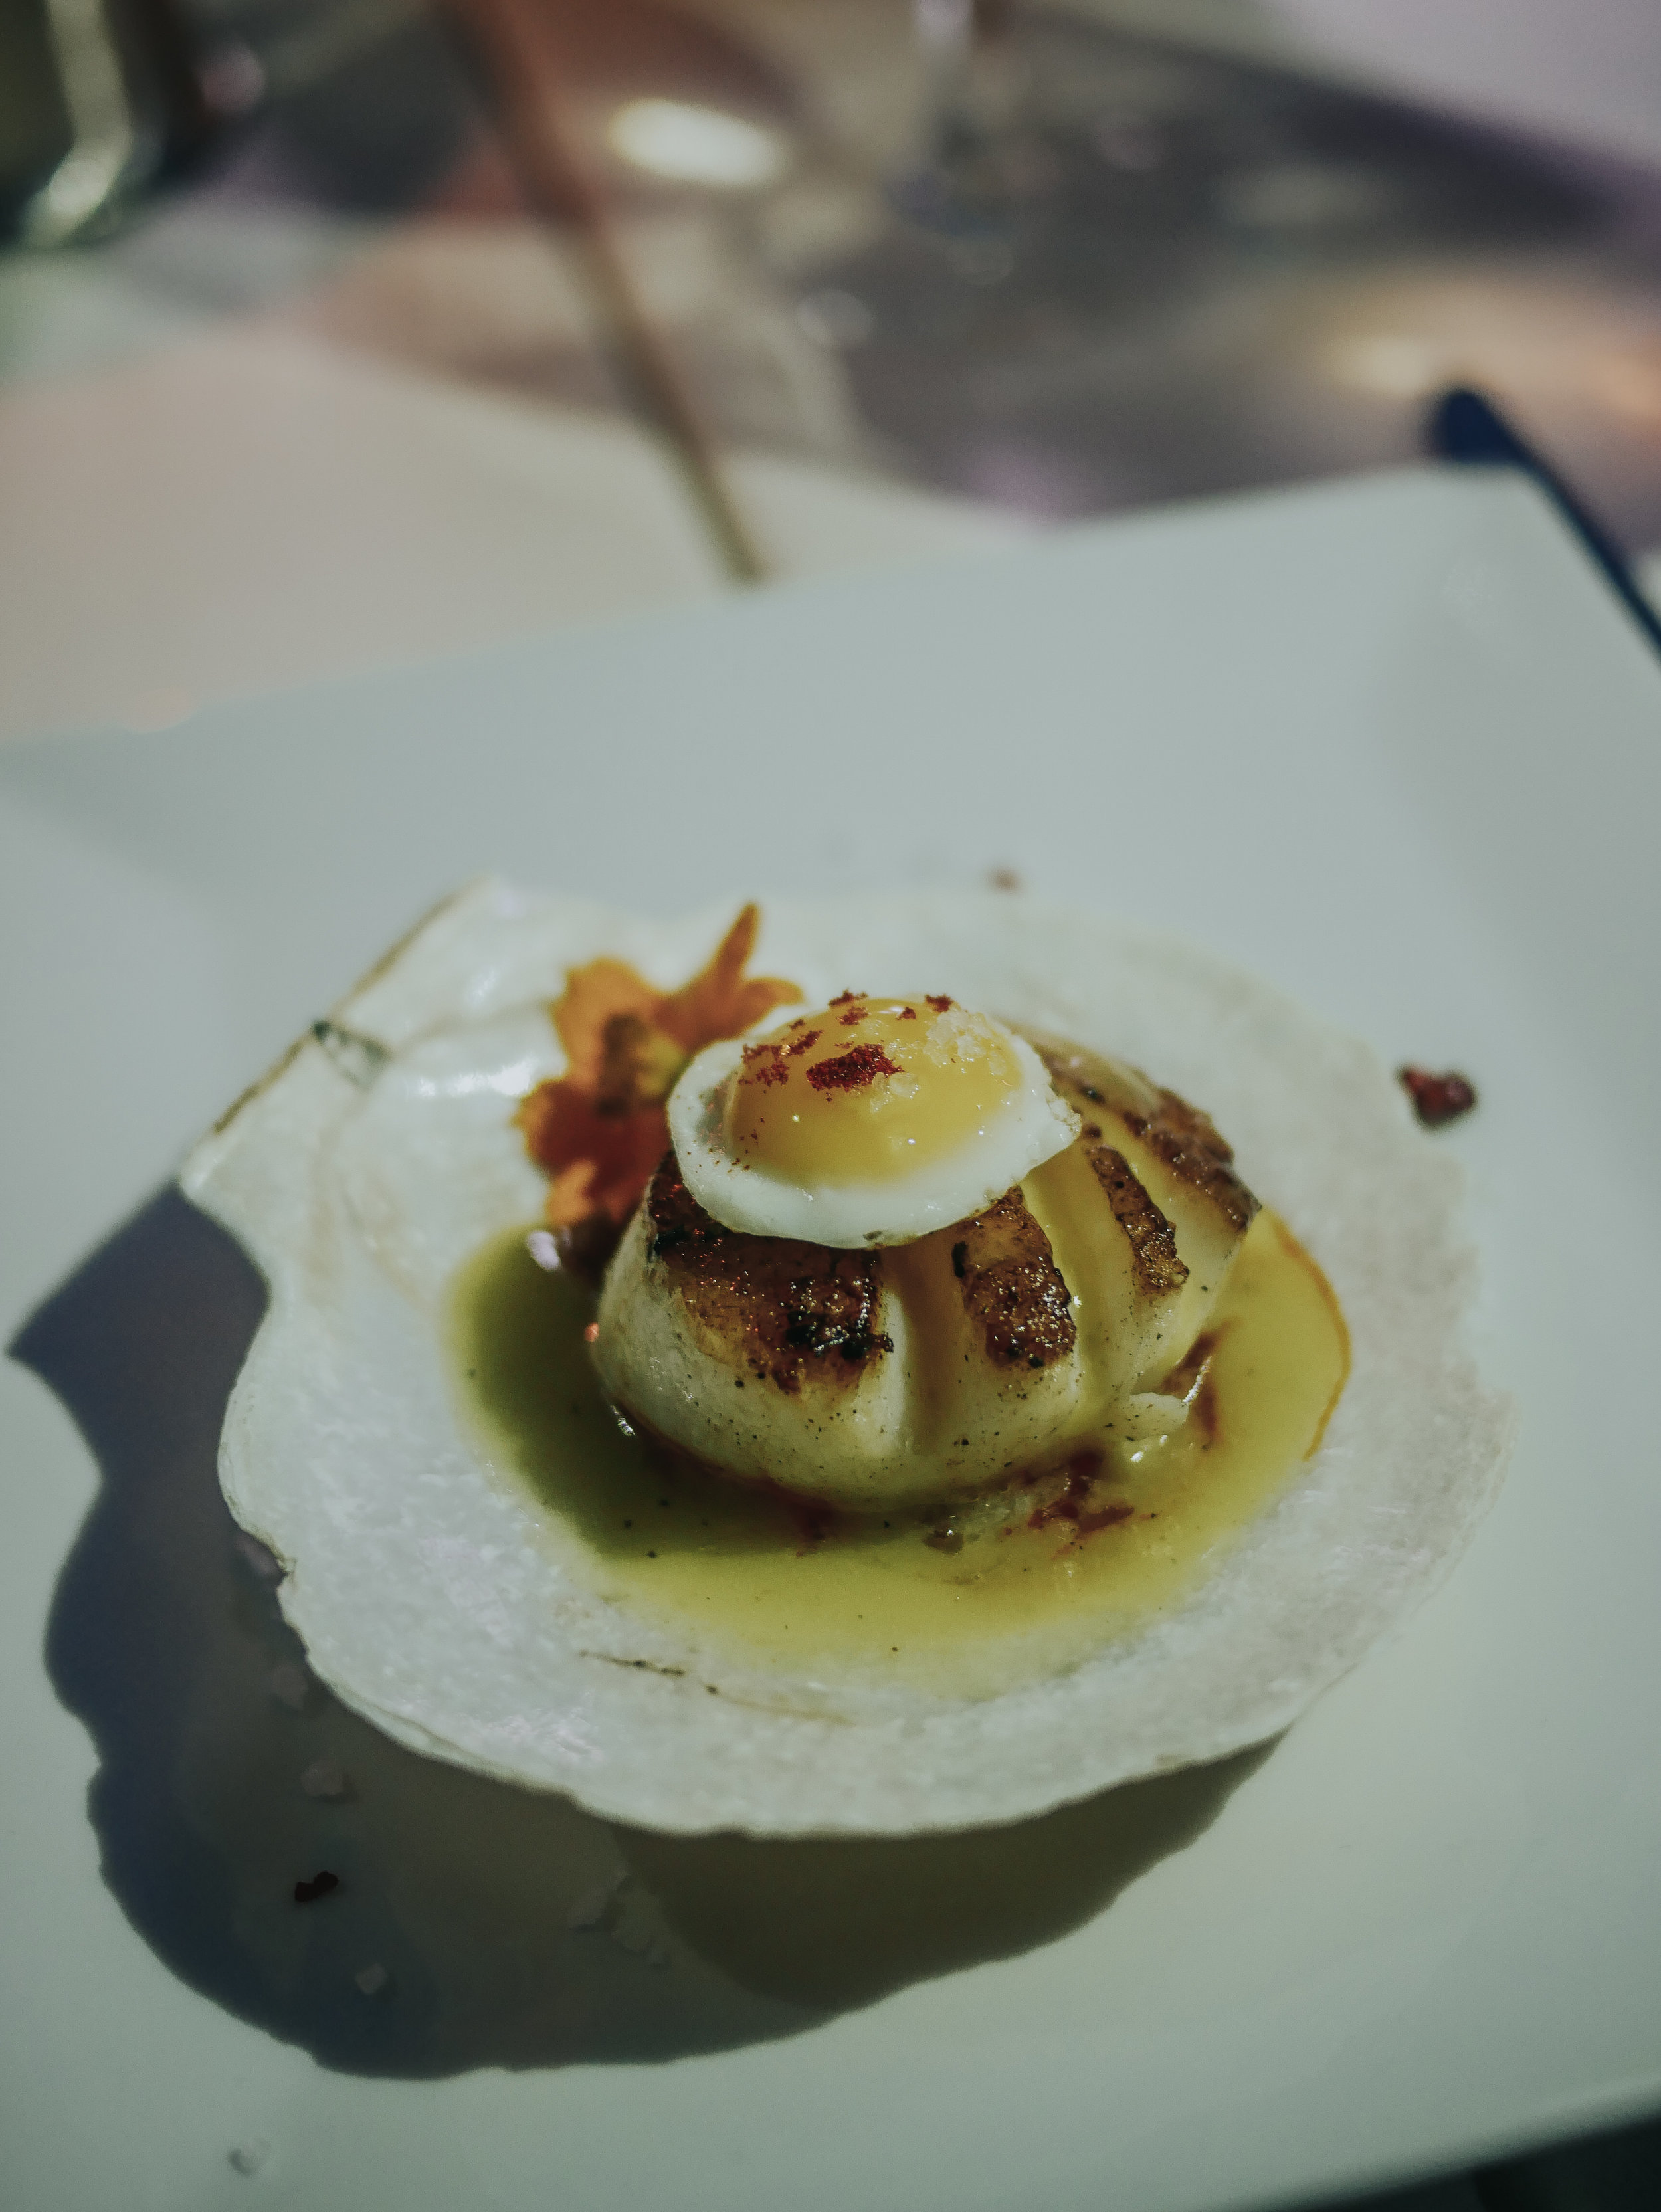 Diver scallops with quail egg